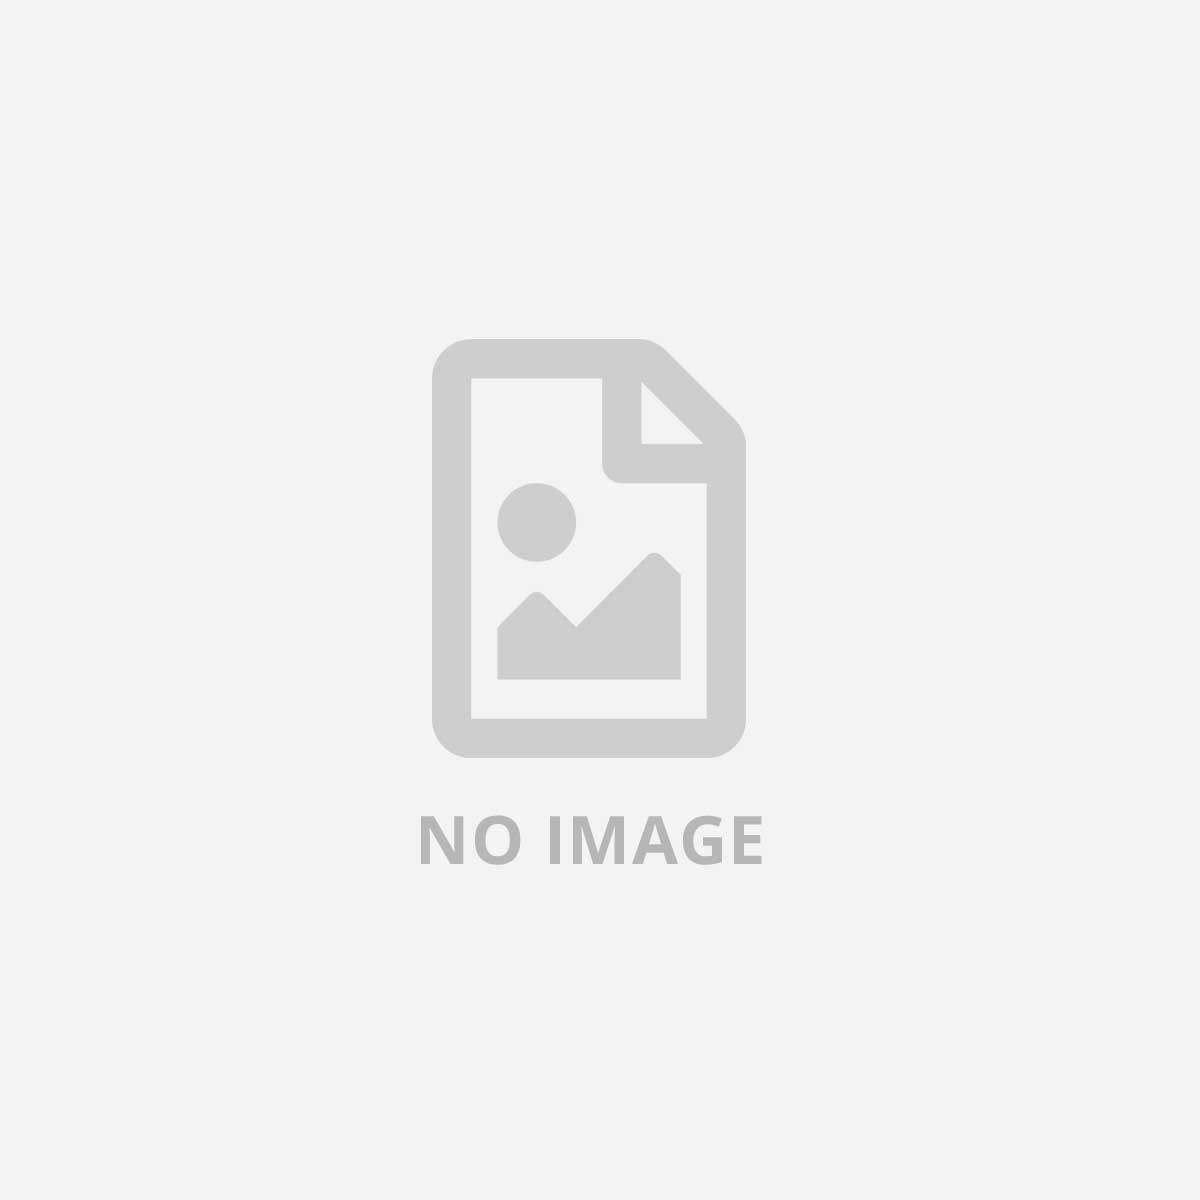 BLACK AND DECKER BLA TRAPANO/AVVITATORE